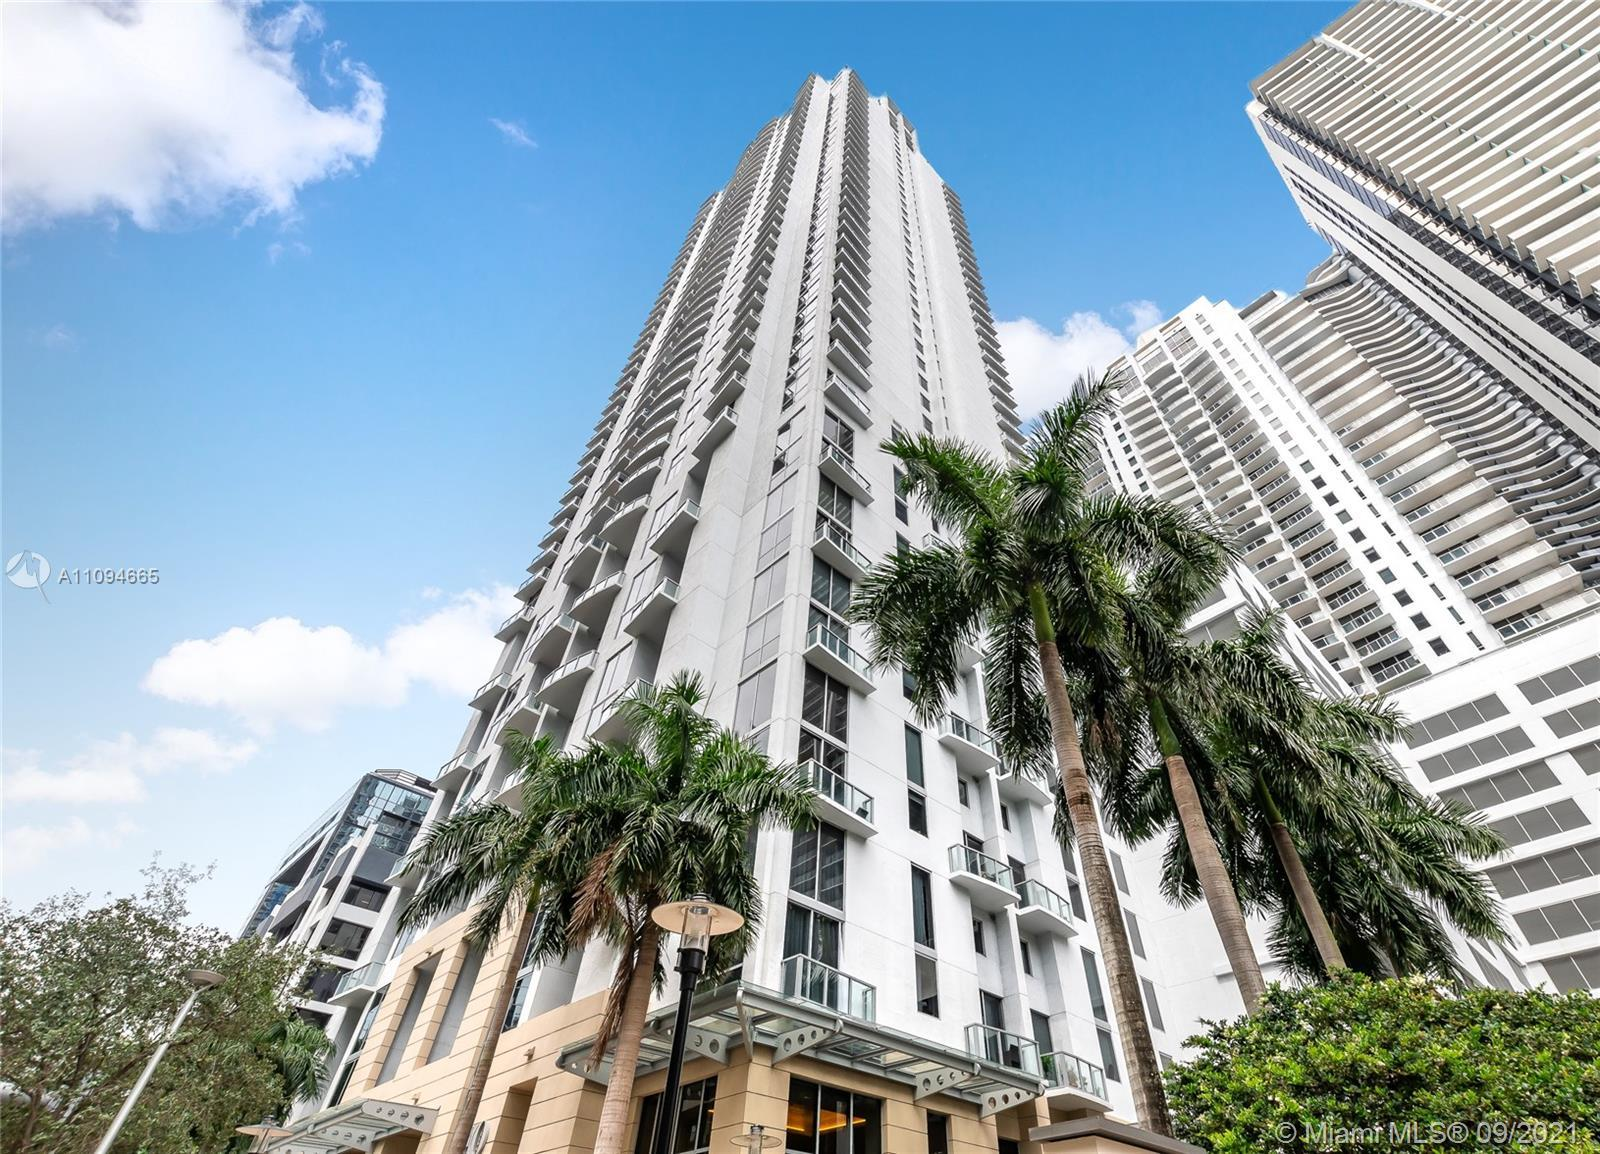 Great unit at 1050 Brickell located in the heart of Brickell. 1 Bedroom/2 full Bathrooms plus a nice